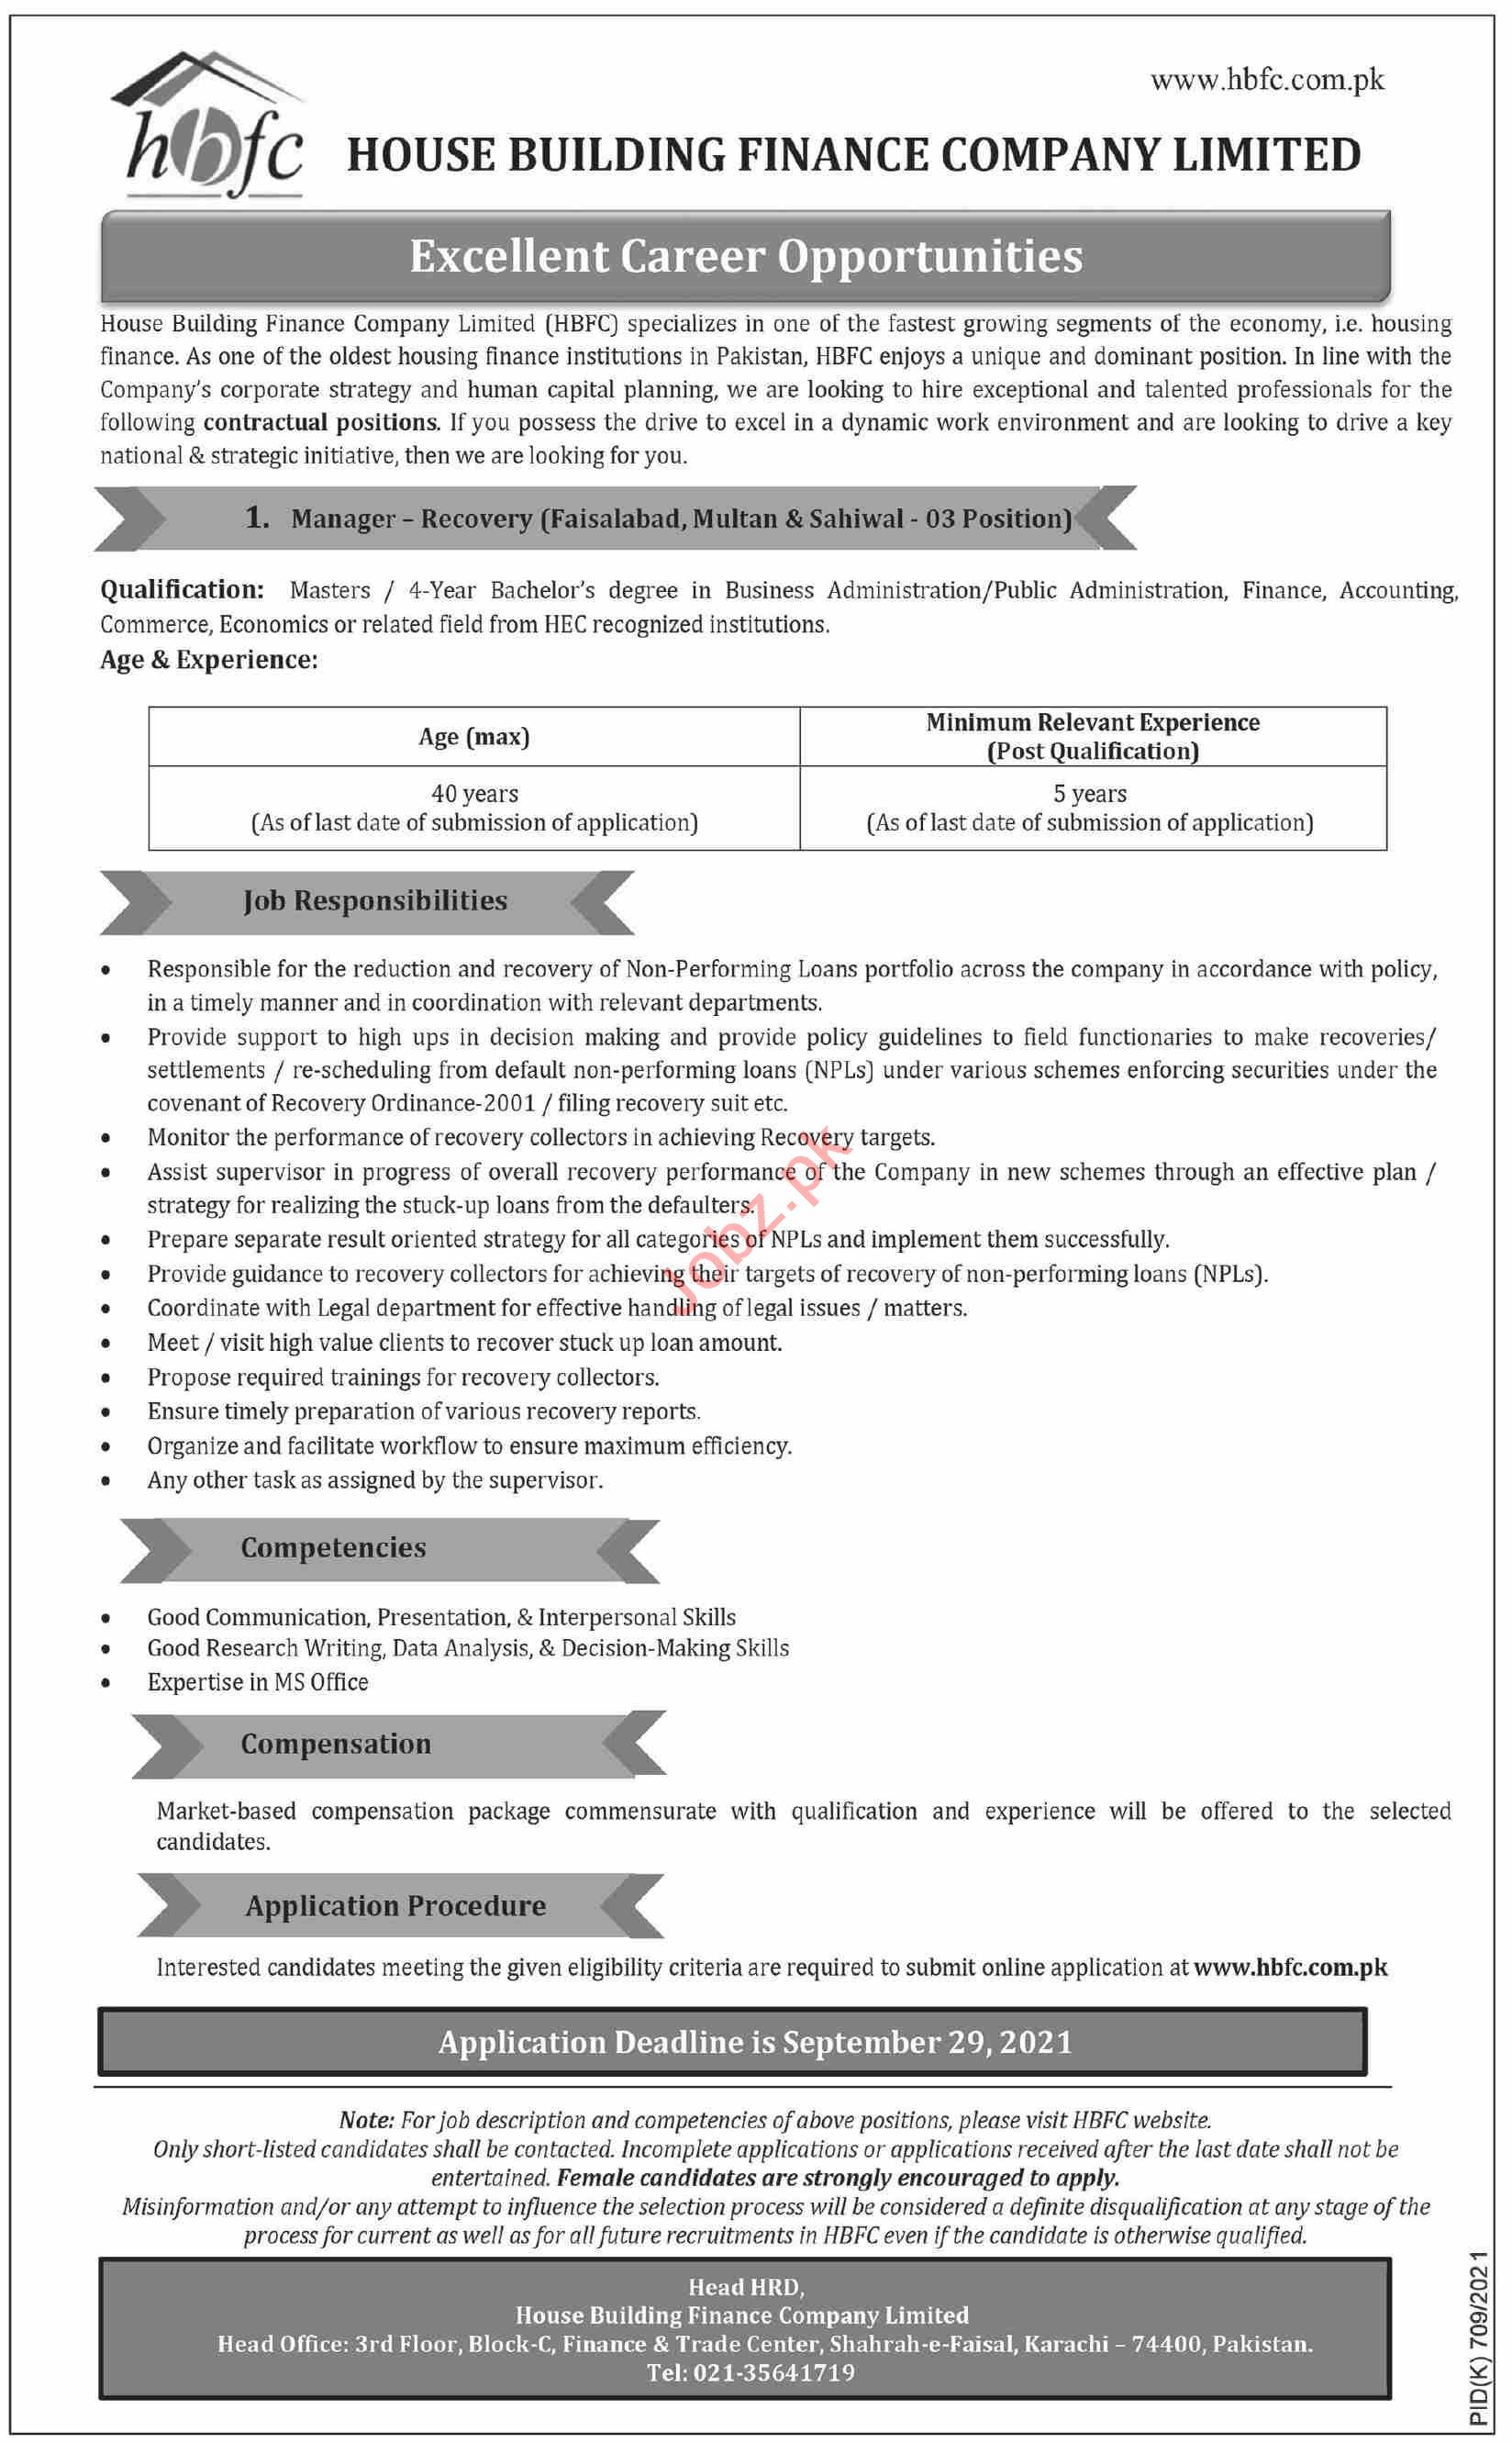 House Building Finance Company HBFC Jobs 2021 for Managers